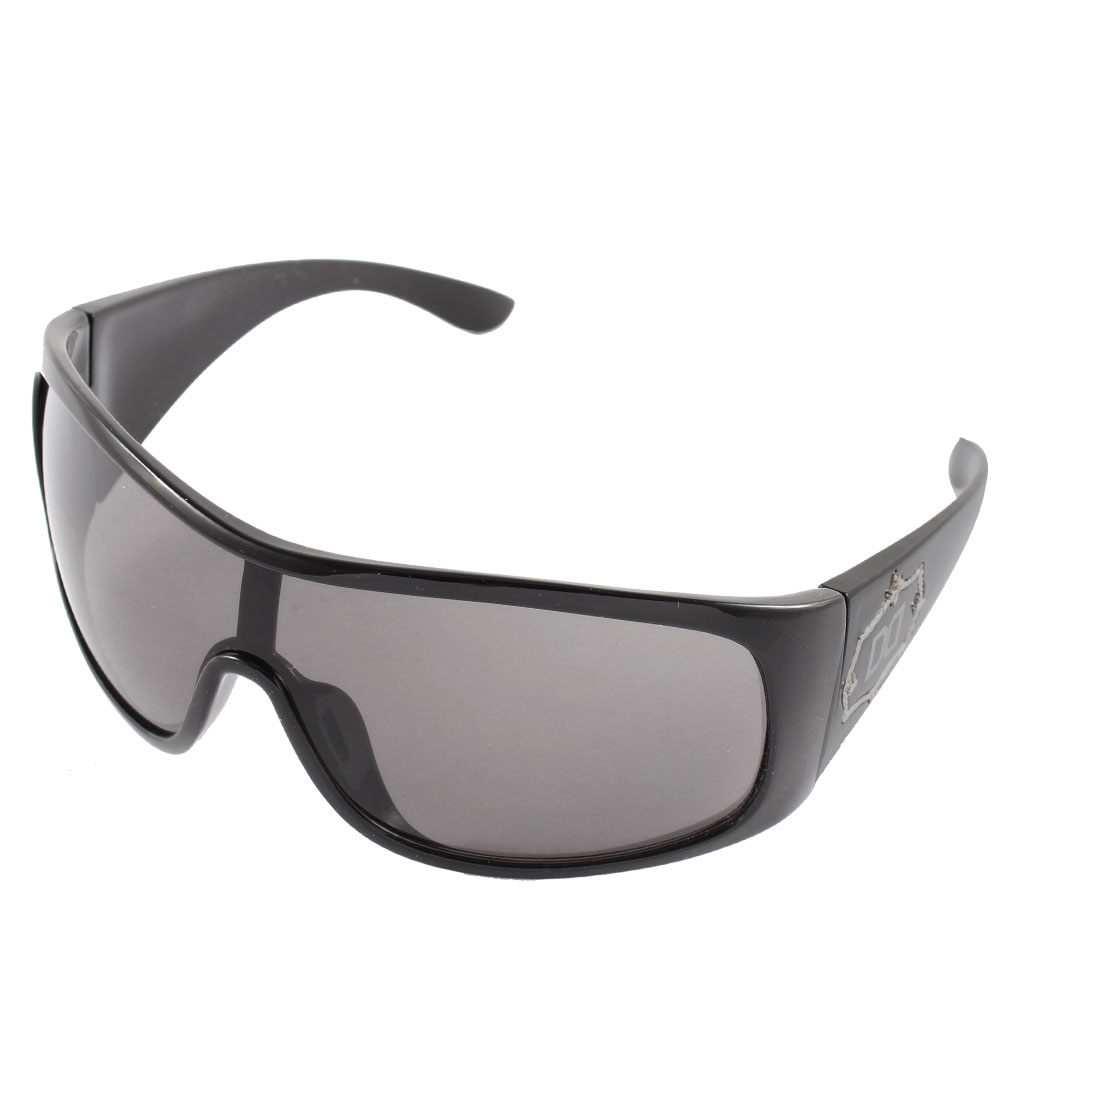 Frosted Full Rim Sun Protecting Eyewear Sunglasses Spectacles Black